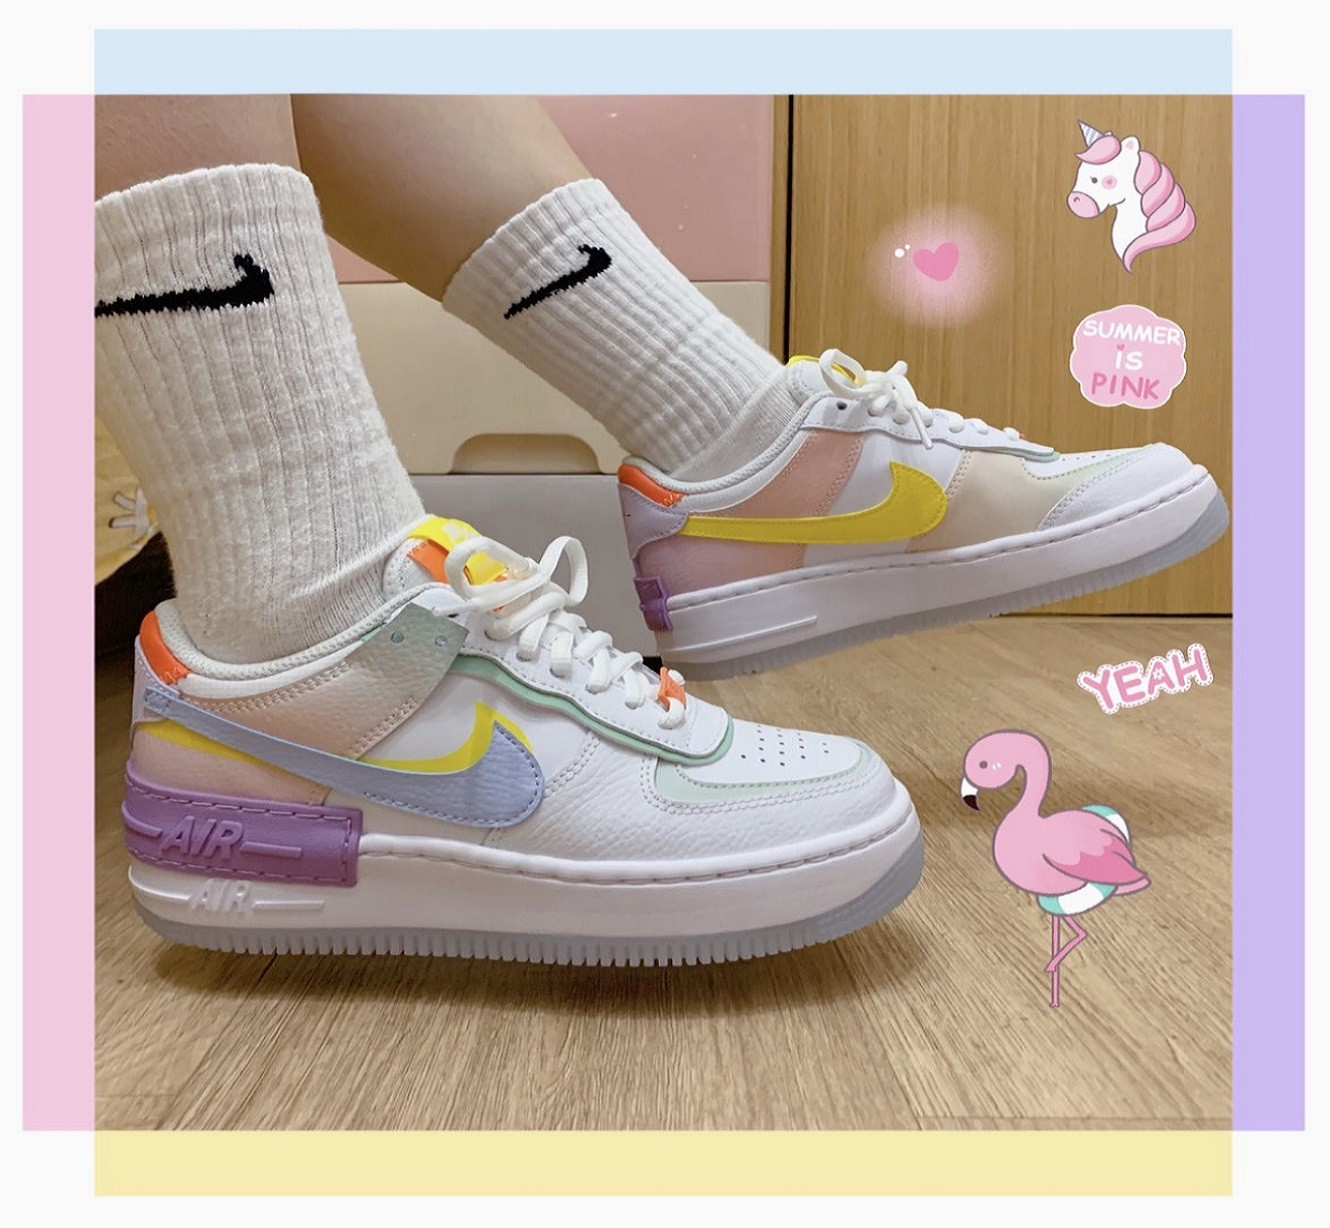 Original Nike Air Force 1 Shadow Af1 Macarone Diamond Candy Boardshoes Sneakers Women Shoes Sportscw2630 141 Shopee Malaysia The nike air force 1 shadow pays homage to the women who. original nike air force 1 shadow af1 macarone diamond candy boardshoes sneakers women shoes sportscw2630 141